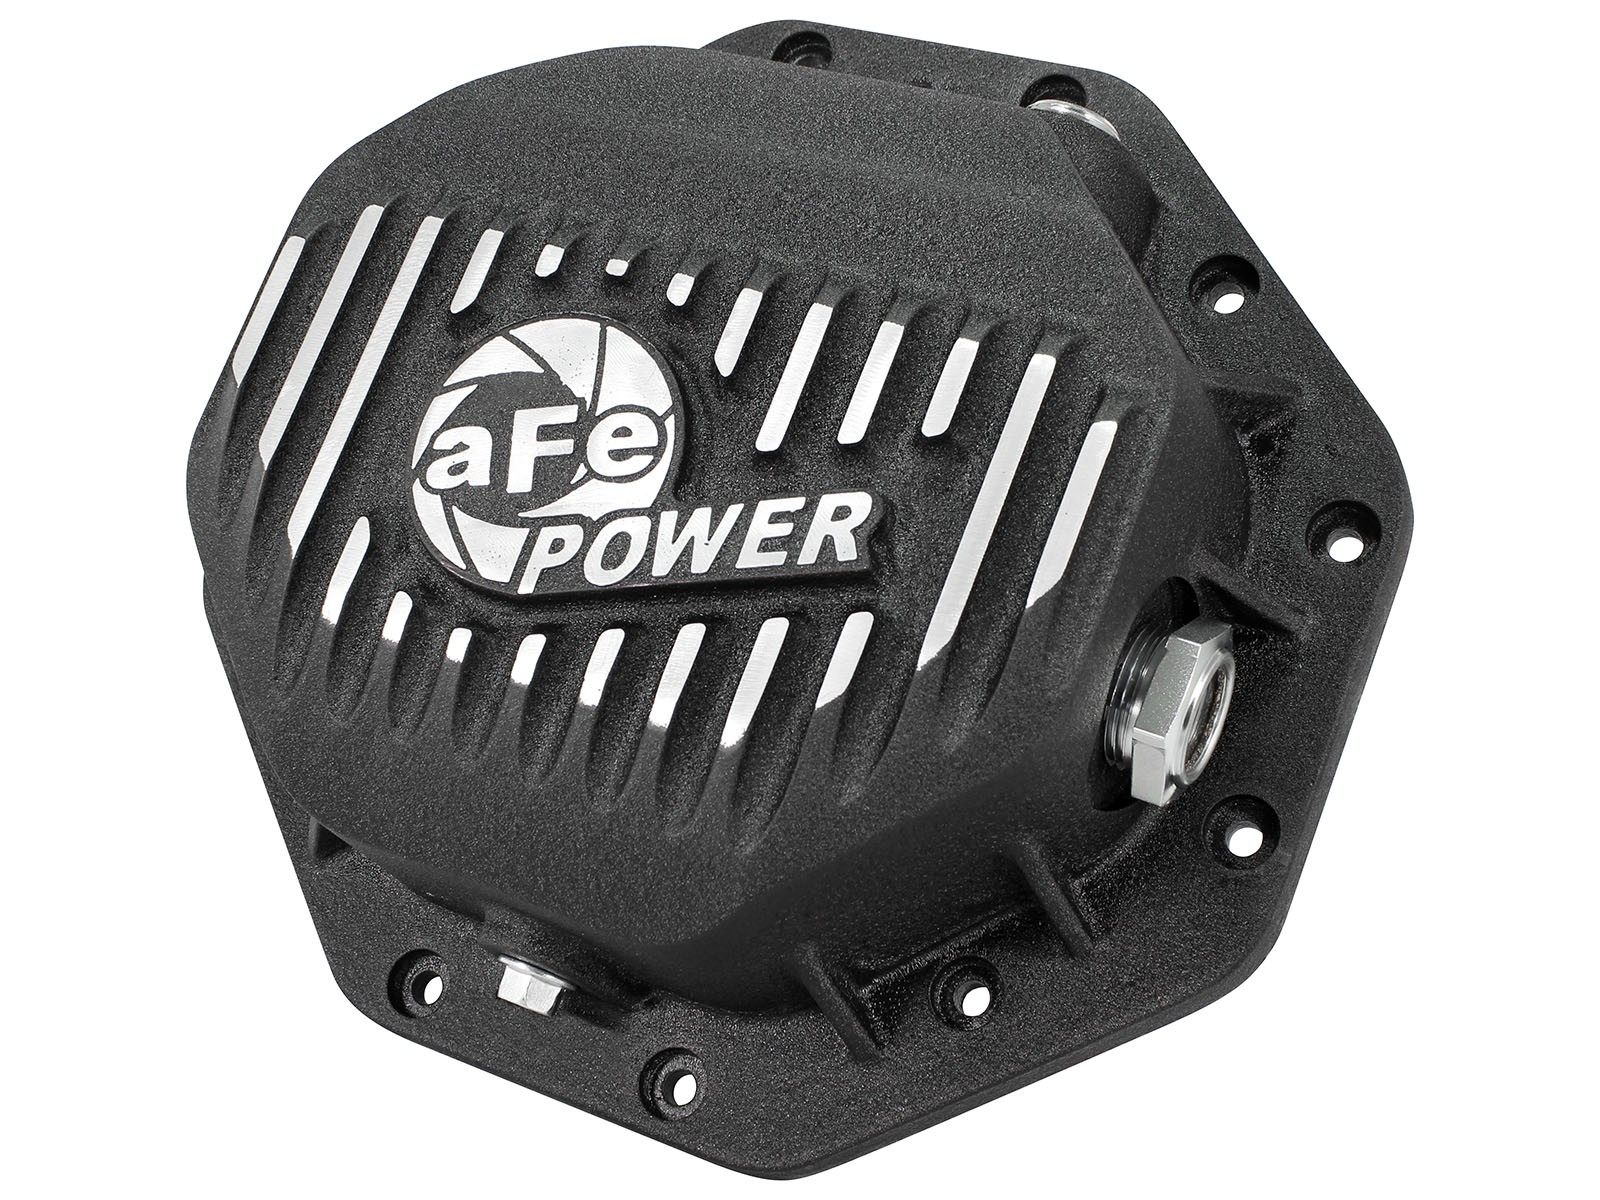 aFe POWER 46-70272 Rear Differential Cover, Machined Fins; Pro Series